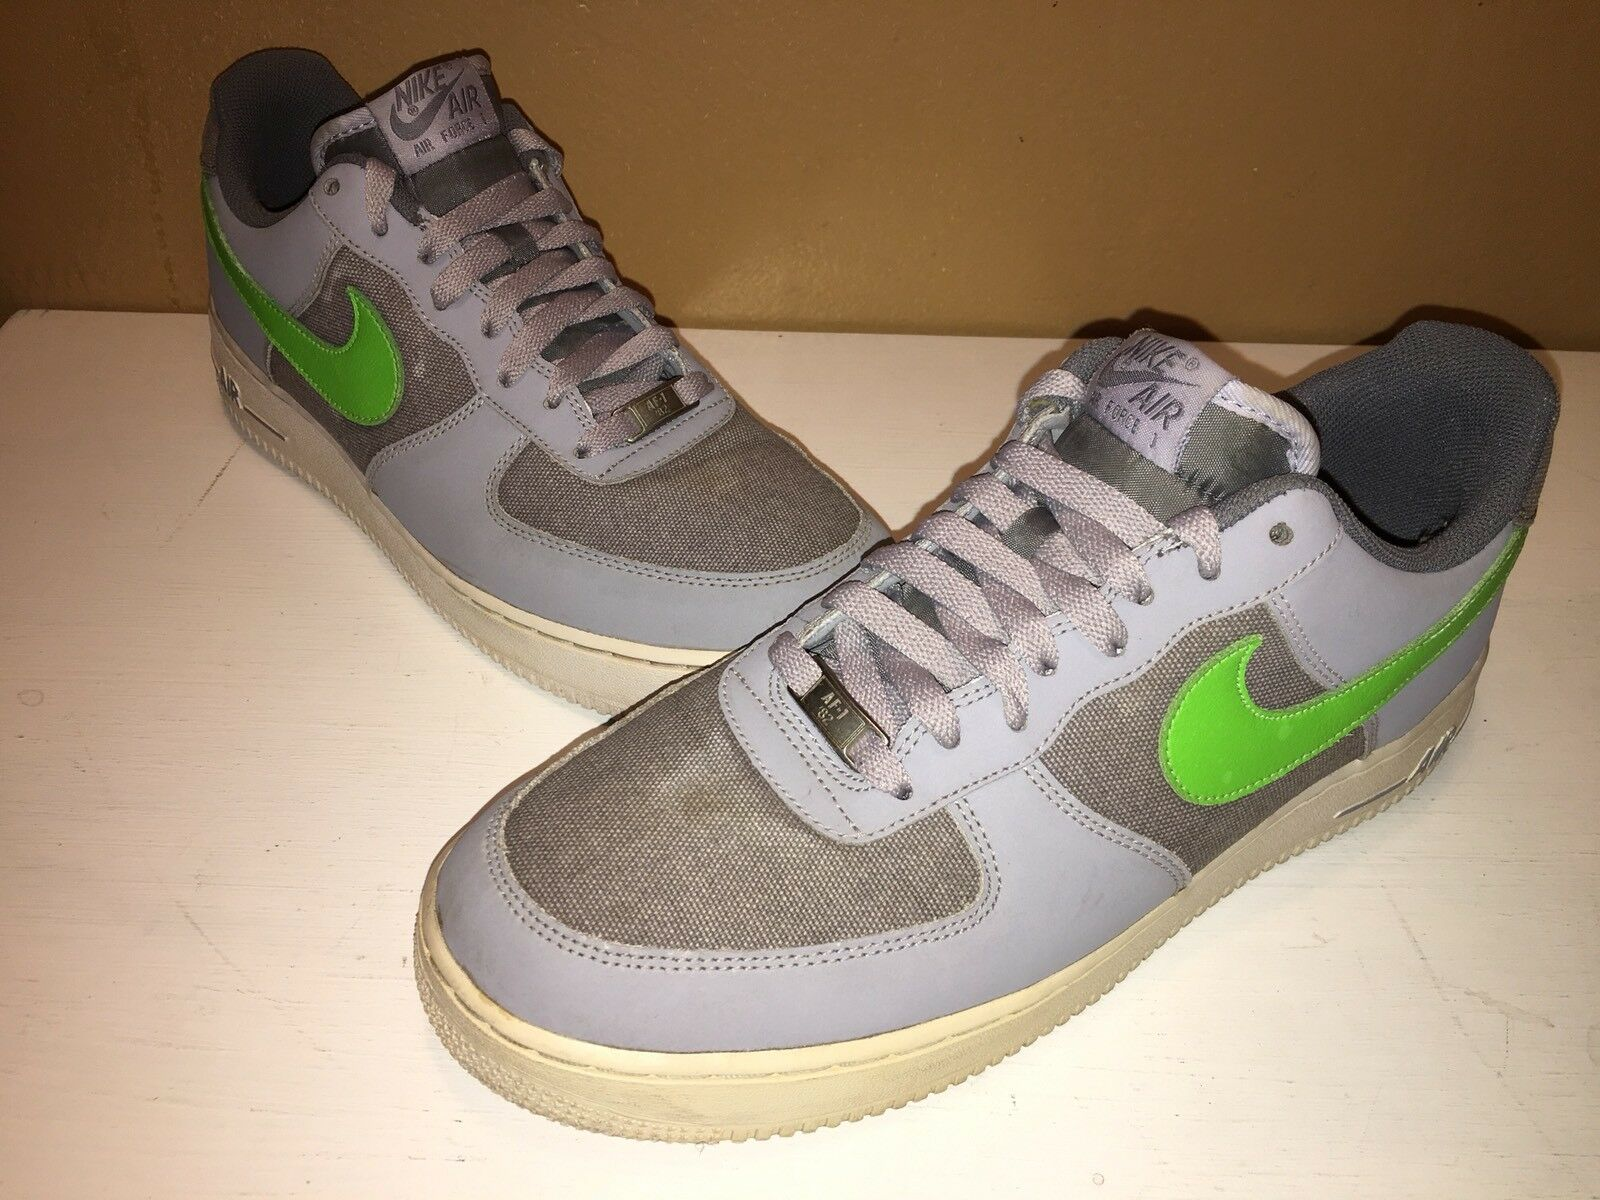 Nike Air force 1 Low Wolf Grey/action Green/white 488298 009 Comfortable